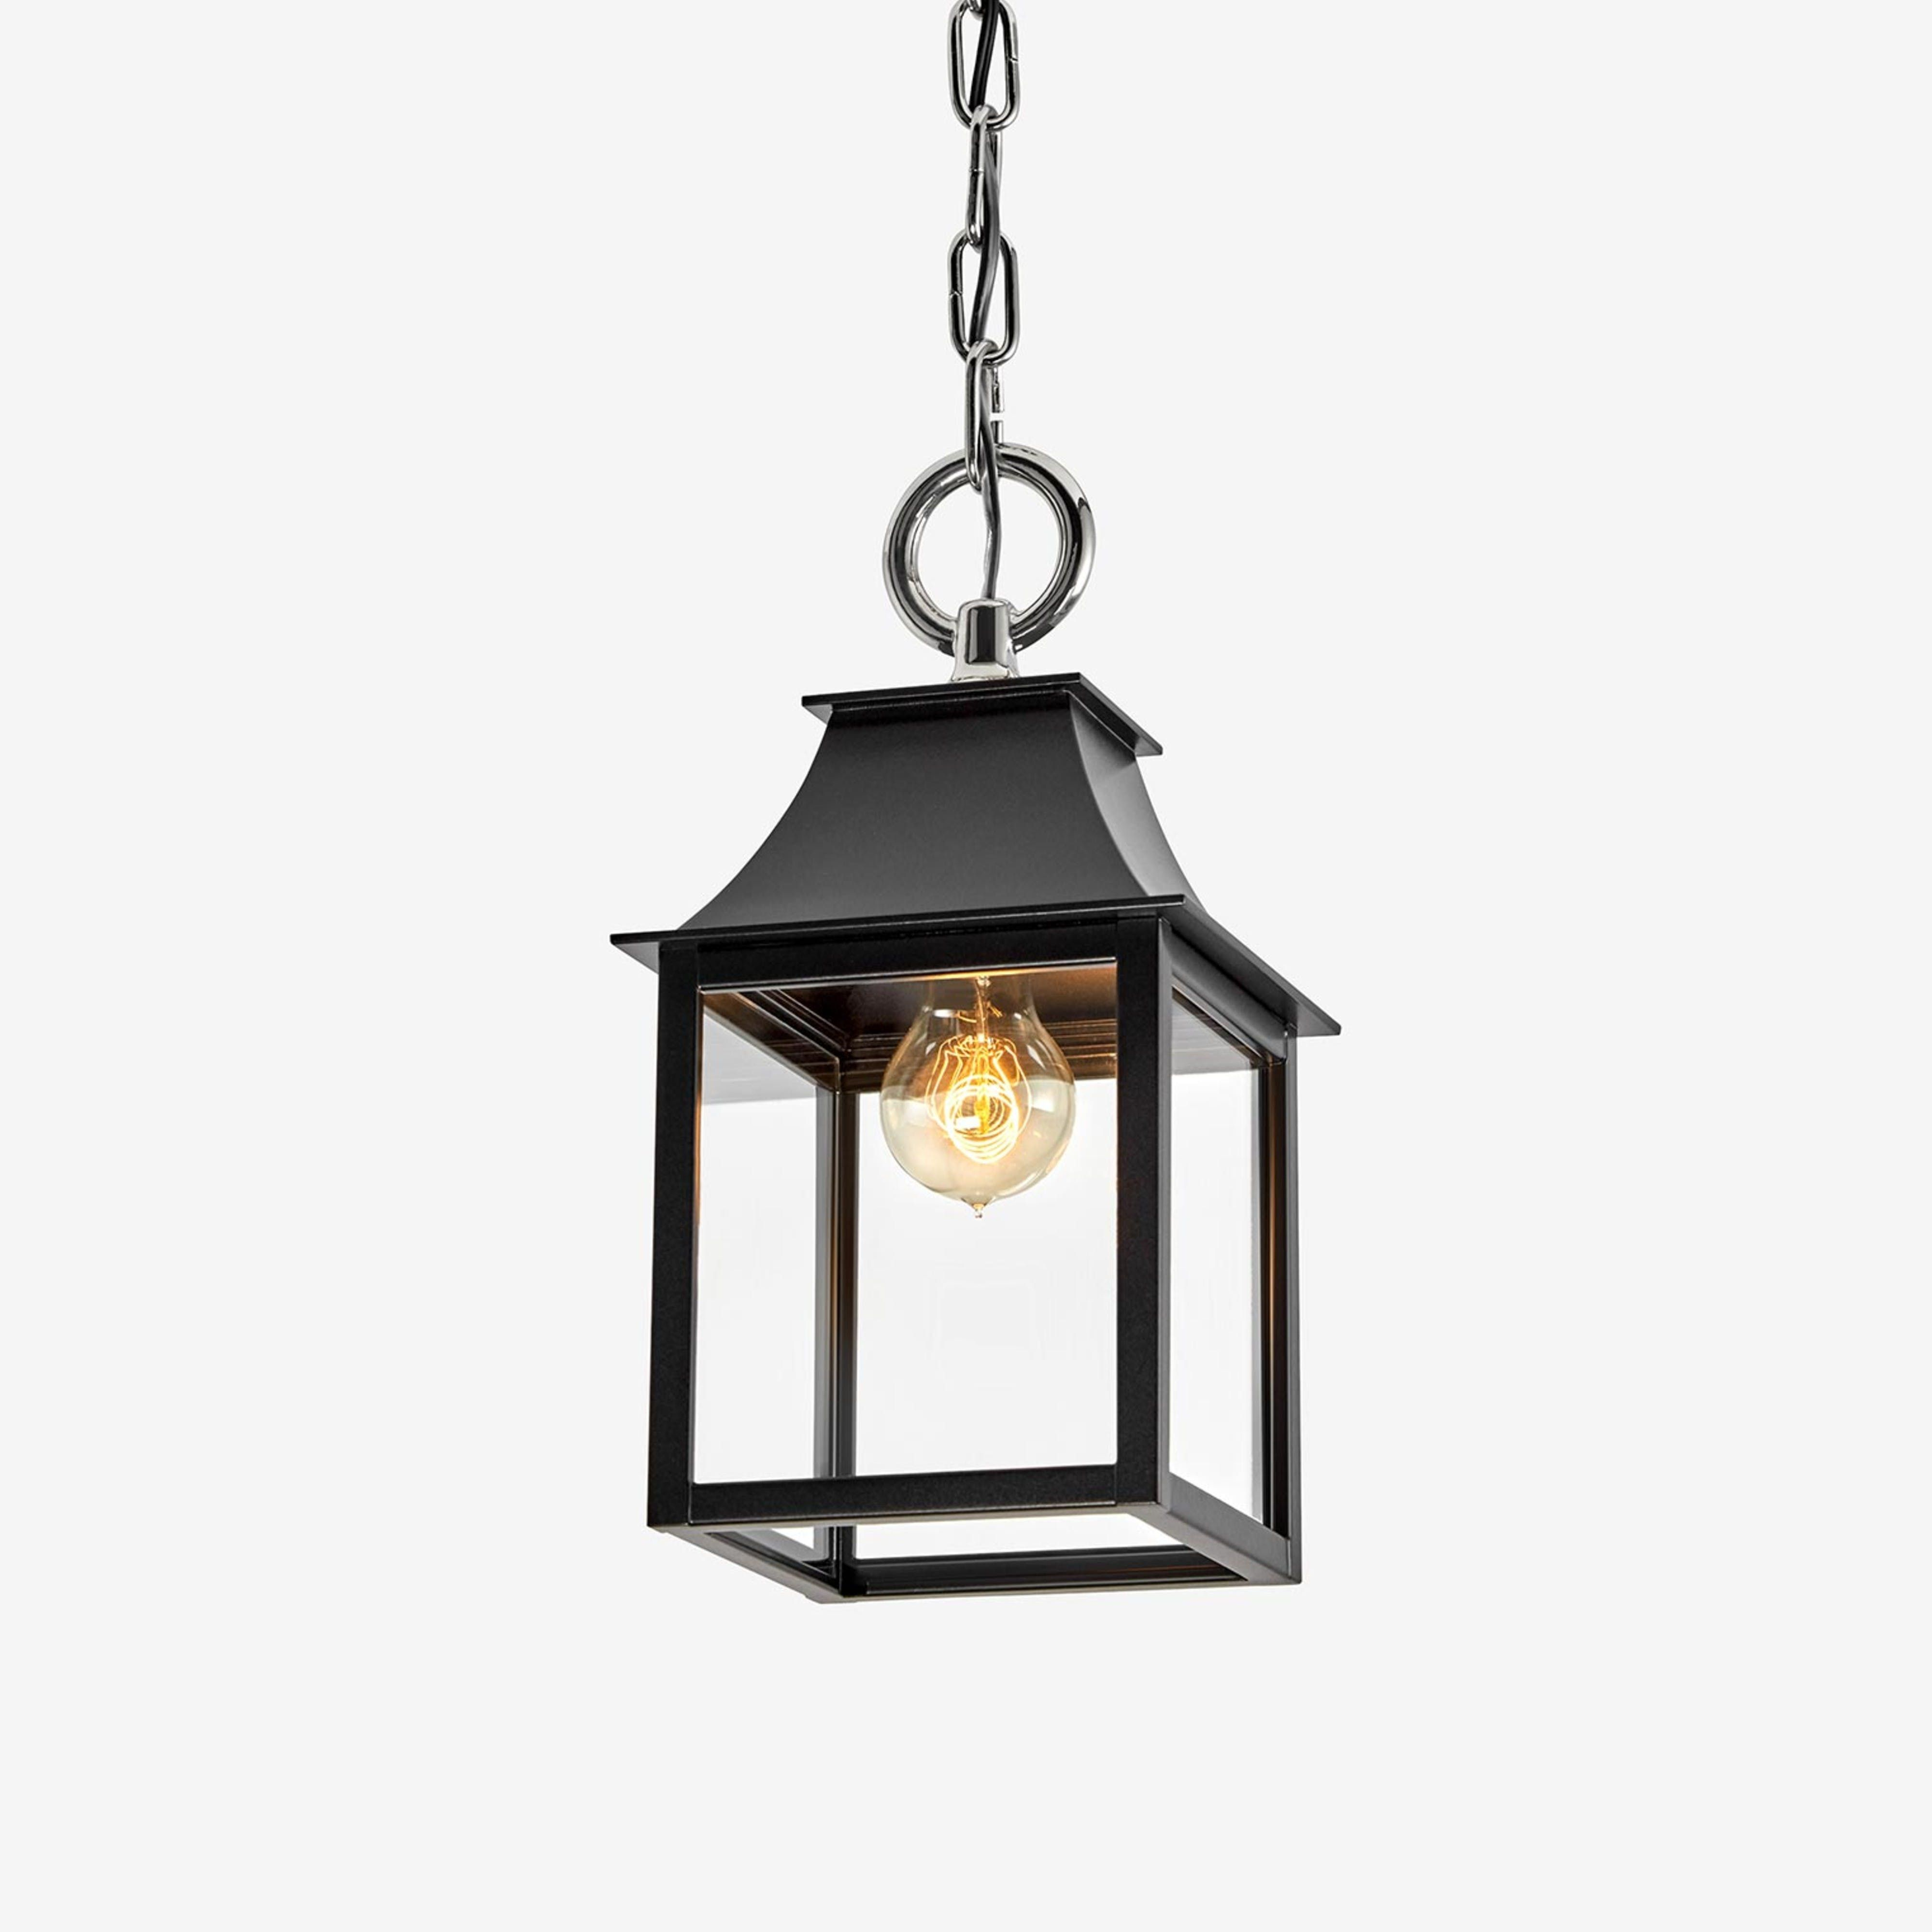 Shop The Mini Stable Lantern Style Pendant Light A Highly Customizable Light Fixture Hand Made By Craftsmen And Small Lanterns Pendant Light Exterior Lighting